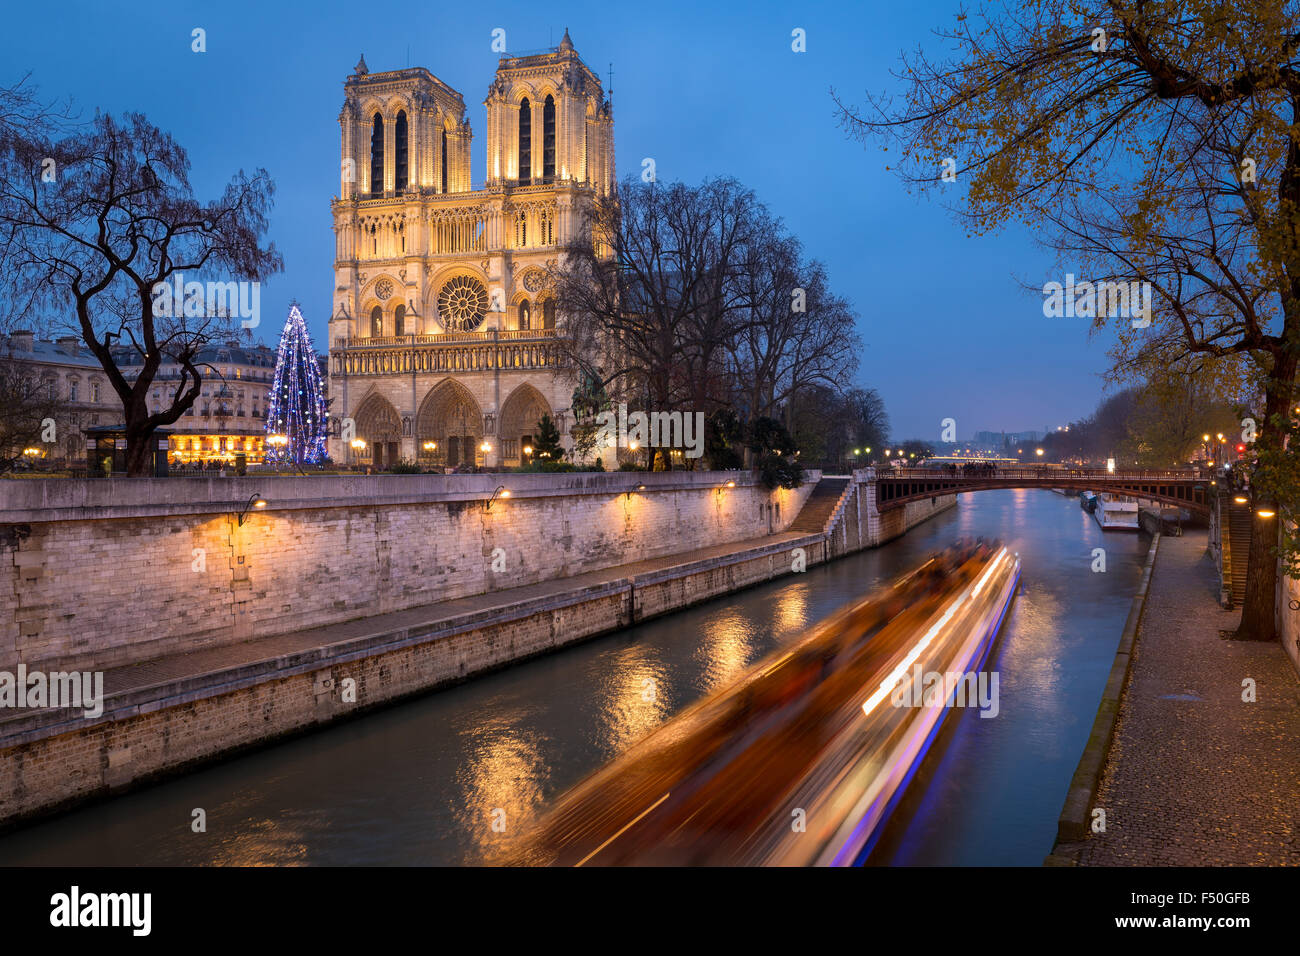 Notre Dame de Paris Cathedral and Christmas Tree Illumination in evening with the Seine River, Ile de la Cite, Paris, Stock Photo